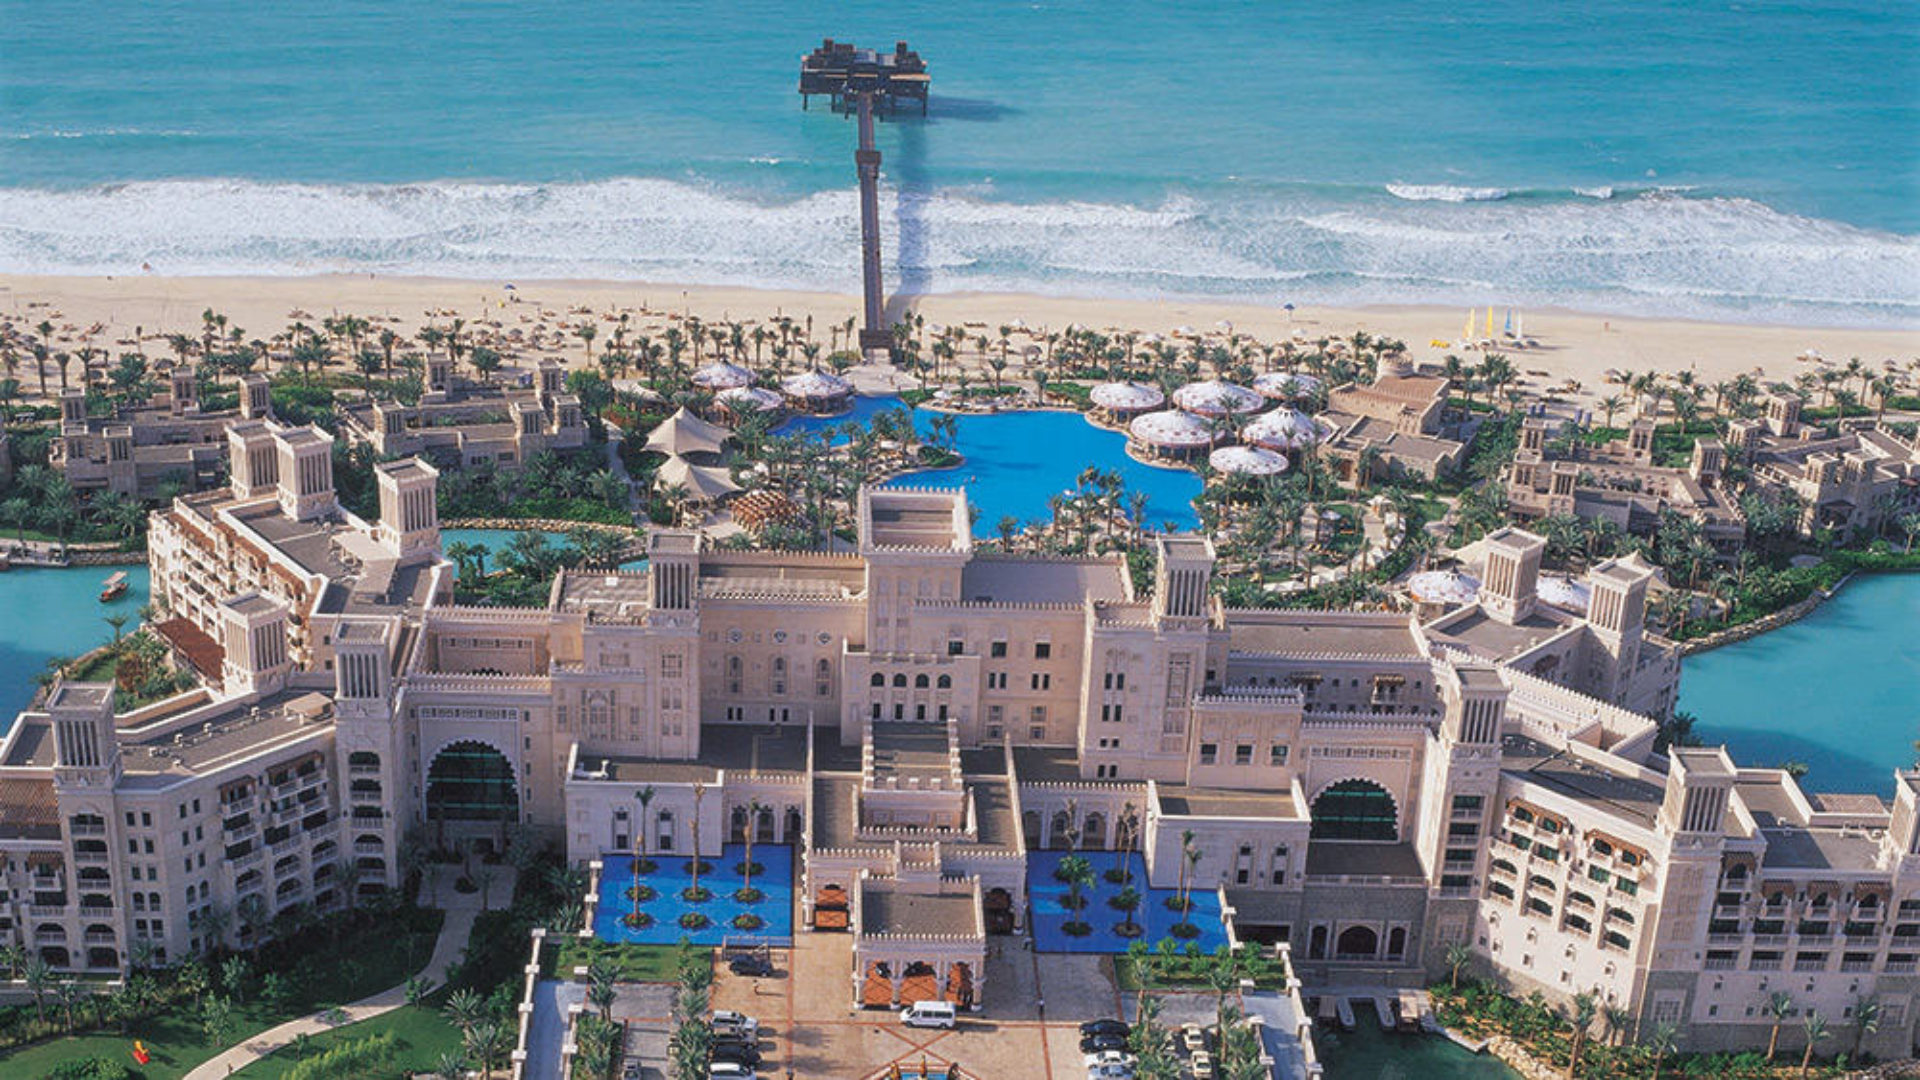 Aerial view of Madinat Jumeirah